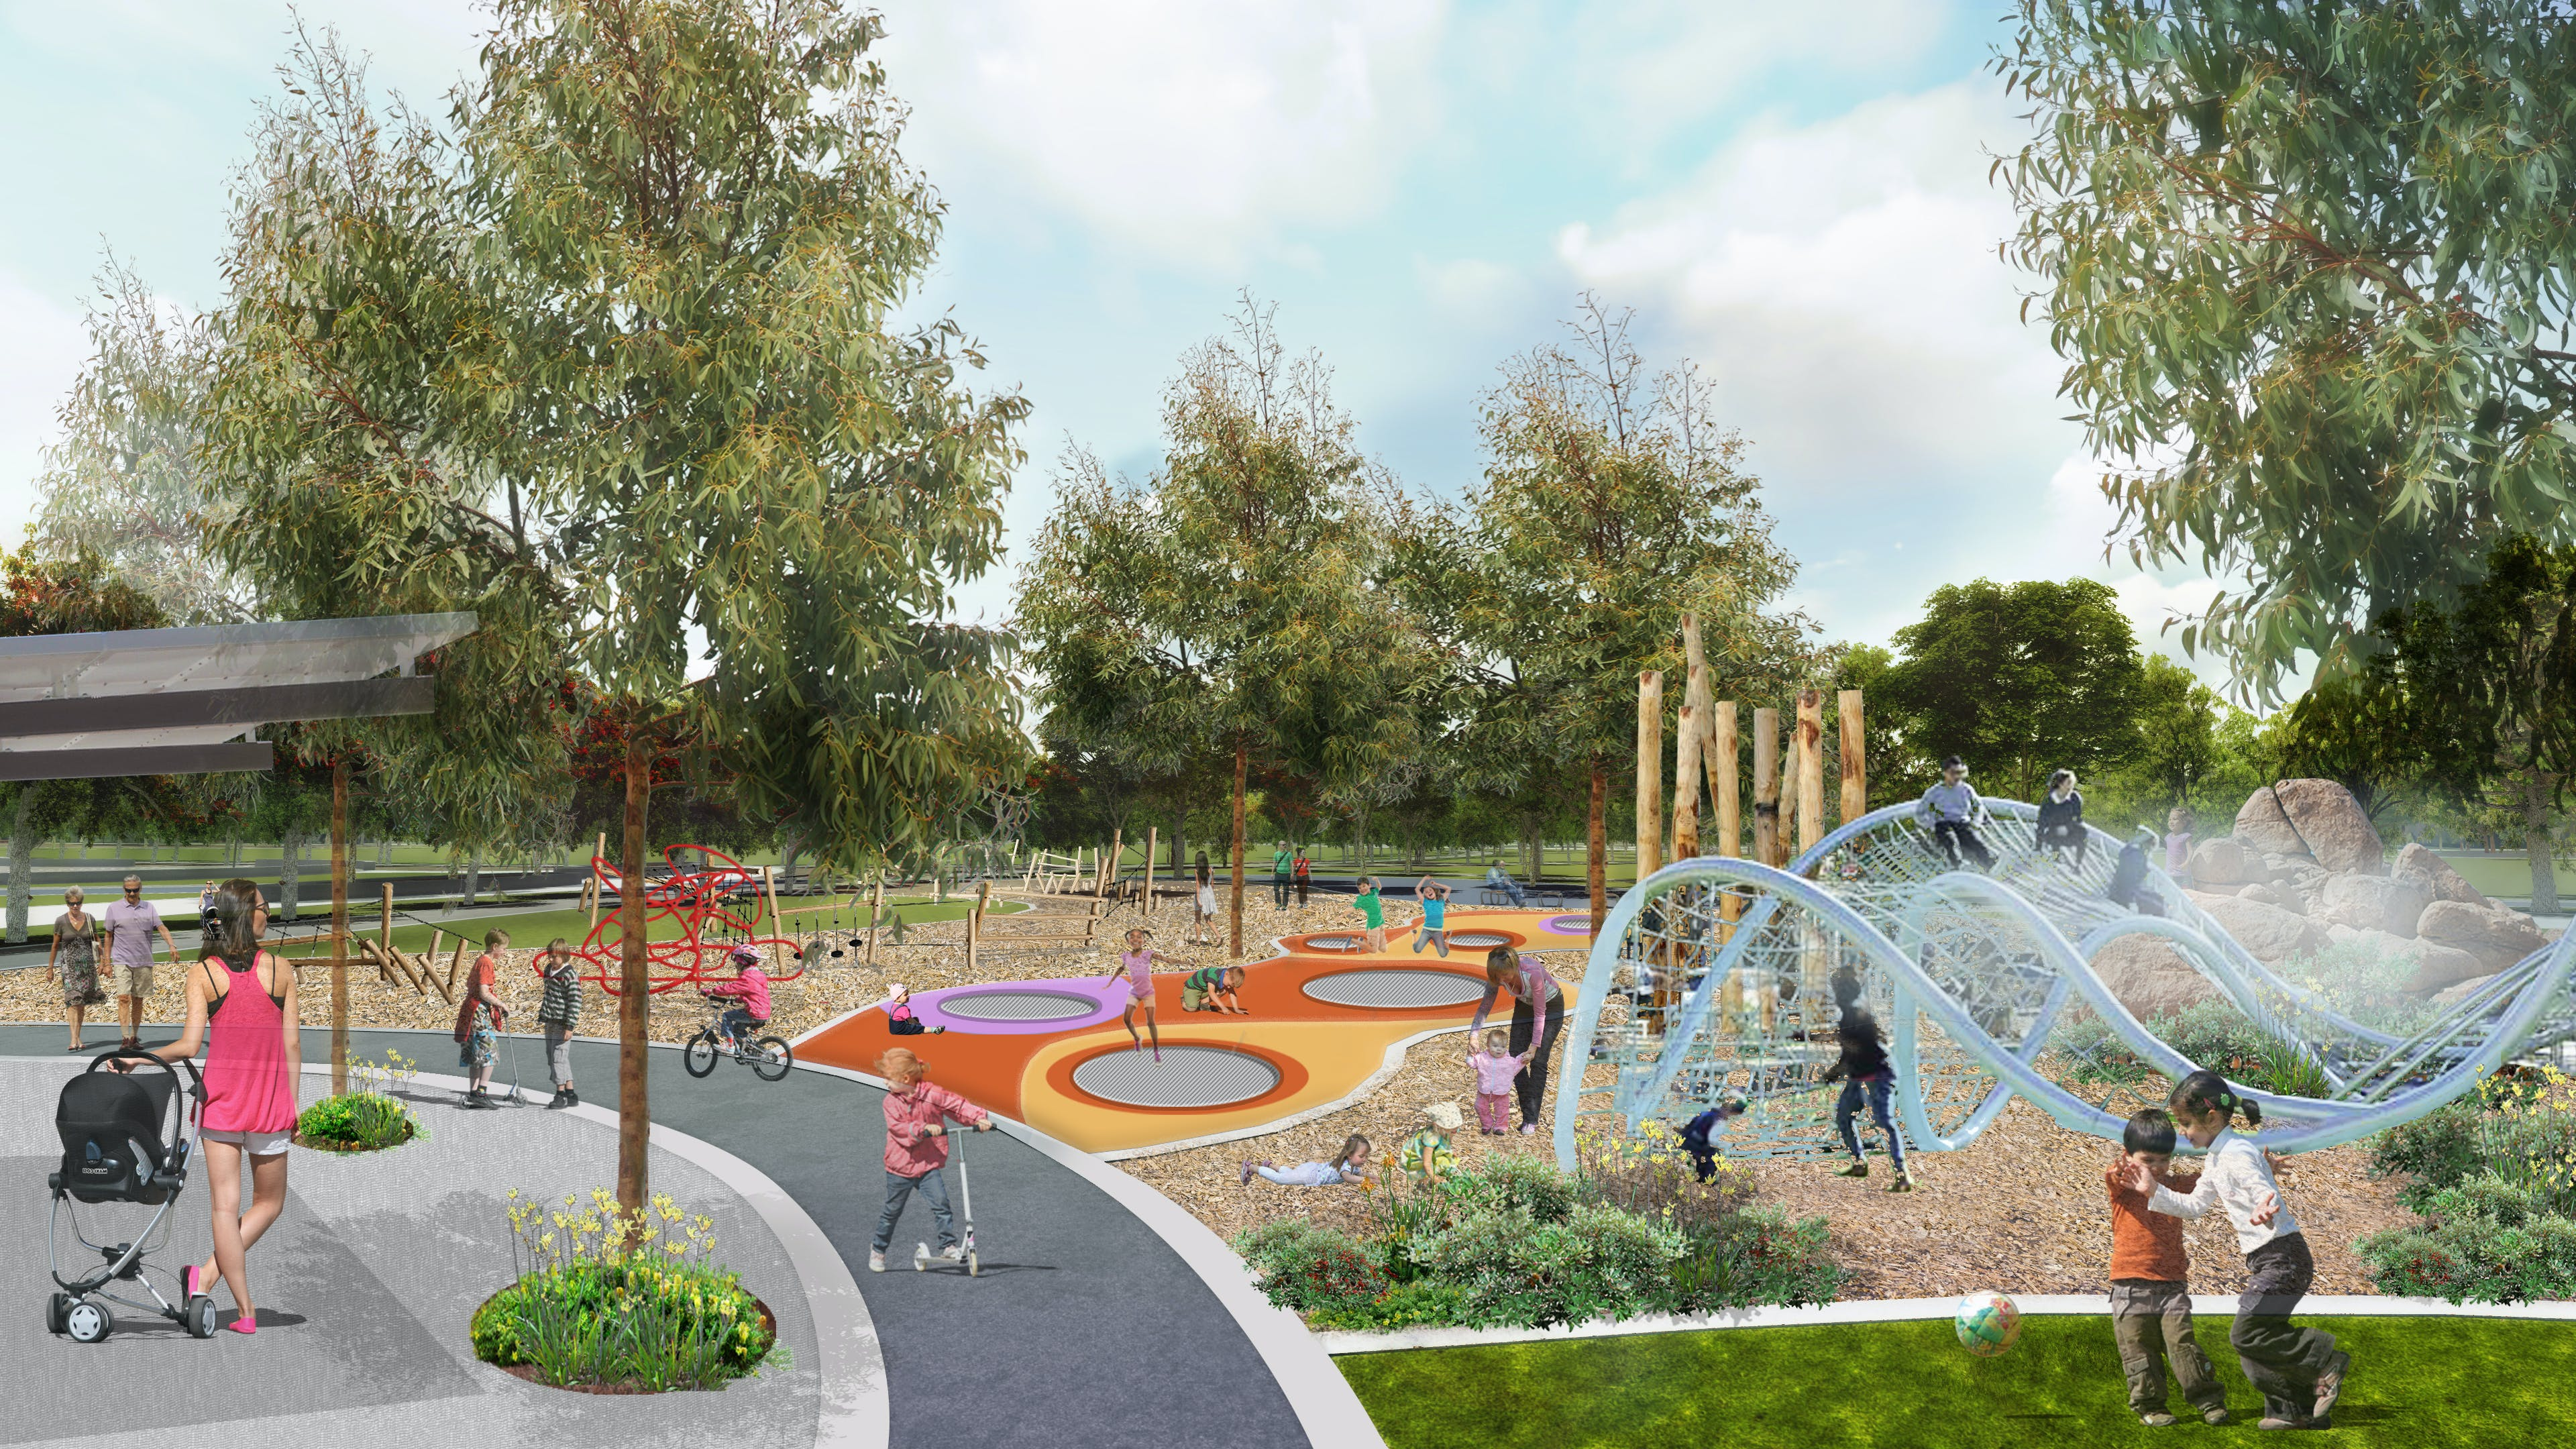 Intergenerational Playground (artist's impression)